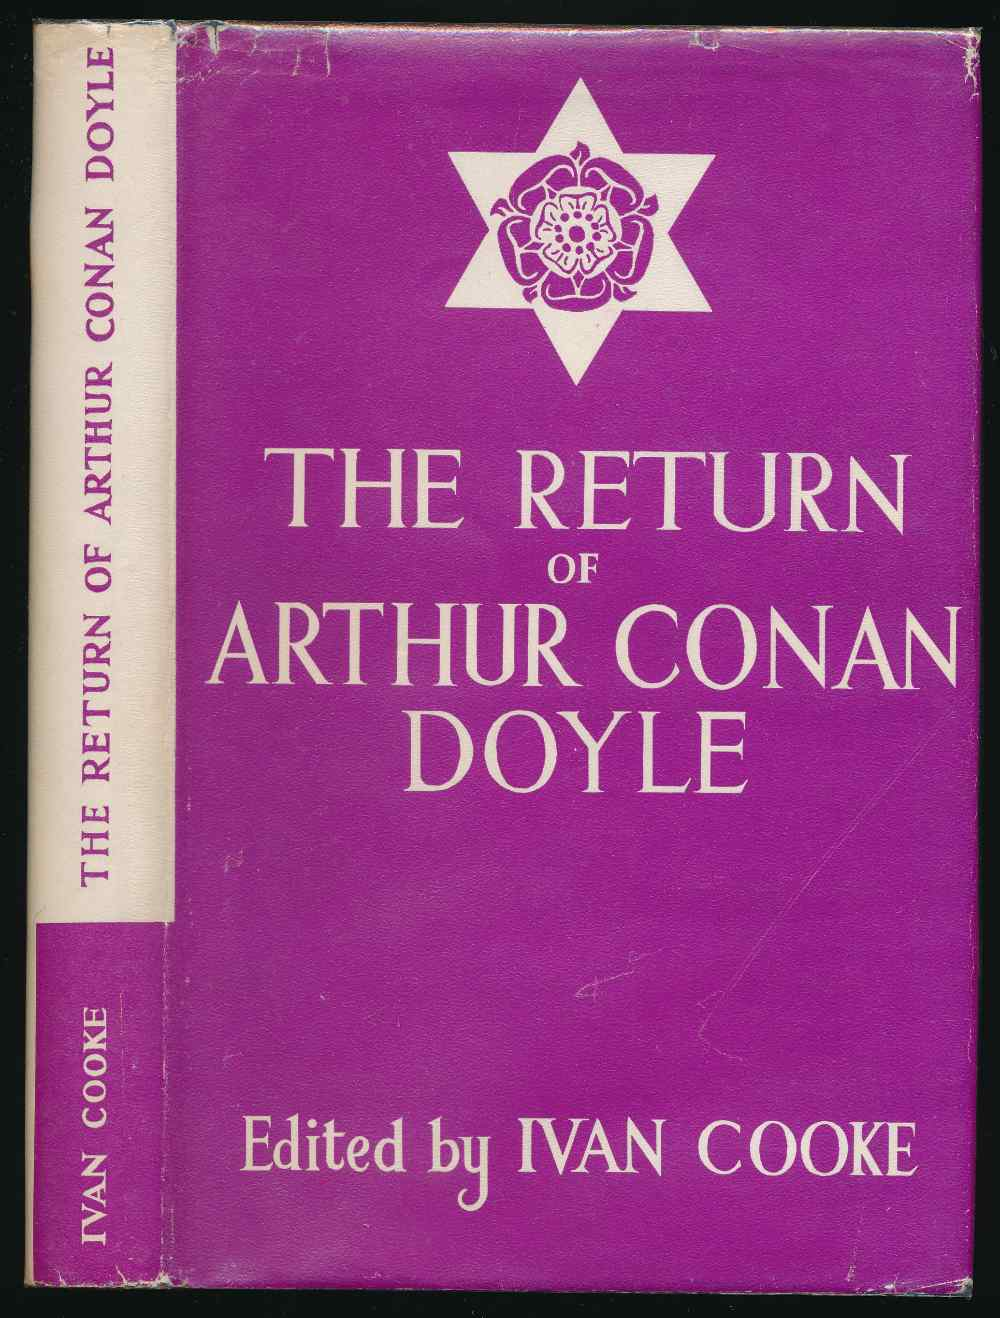 The return of Arthur Conan Doyle